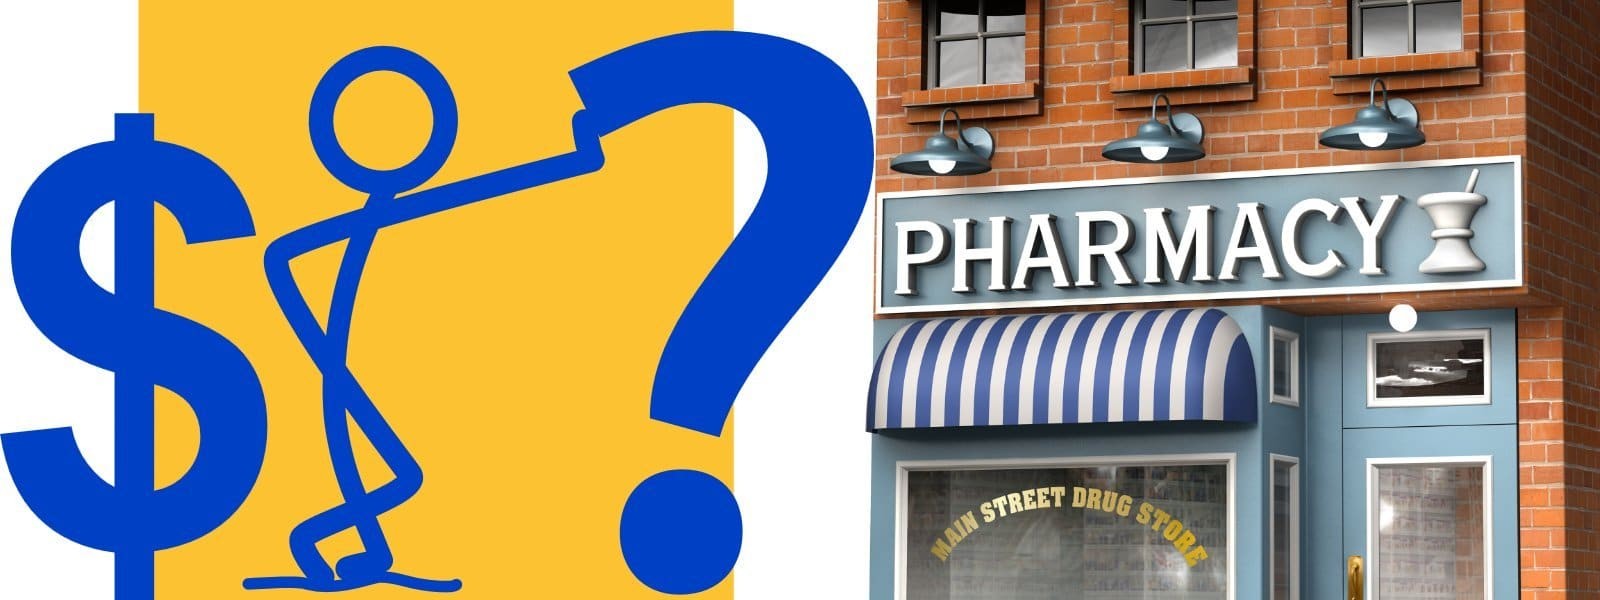 pharmacy valuation, pharmacy ownership, independent pharmacy ownership, pharmacy brokerage services, sell my pharmacy, sell a pharmacy, what is my pharmacy worth